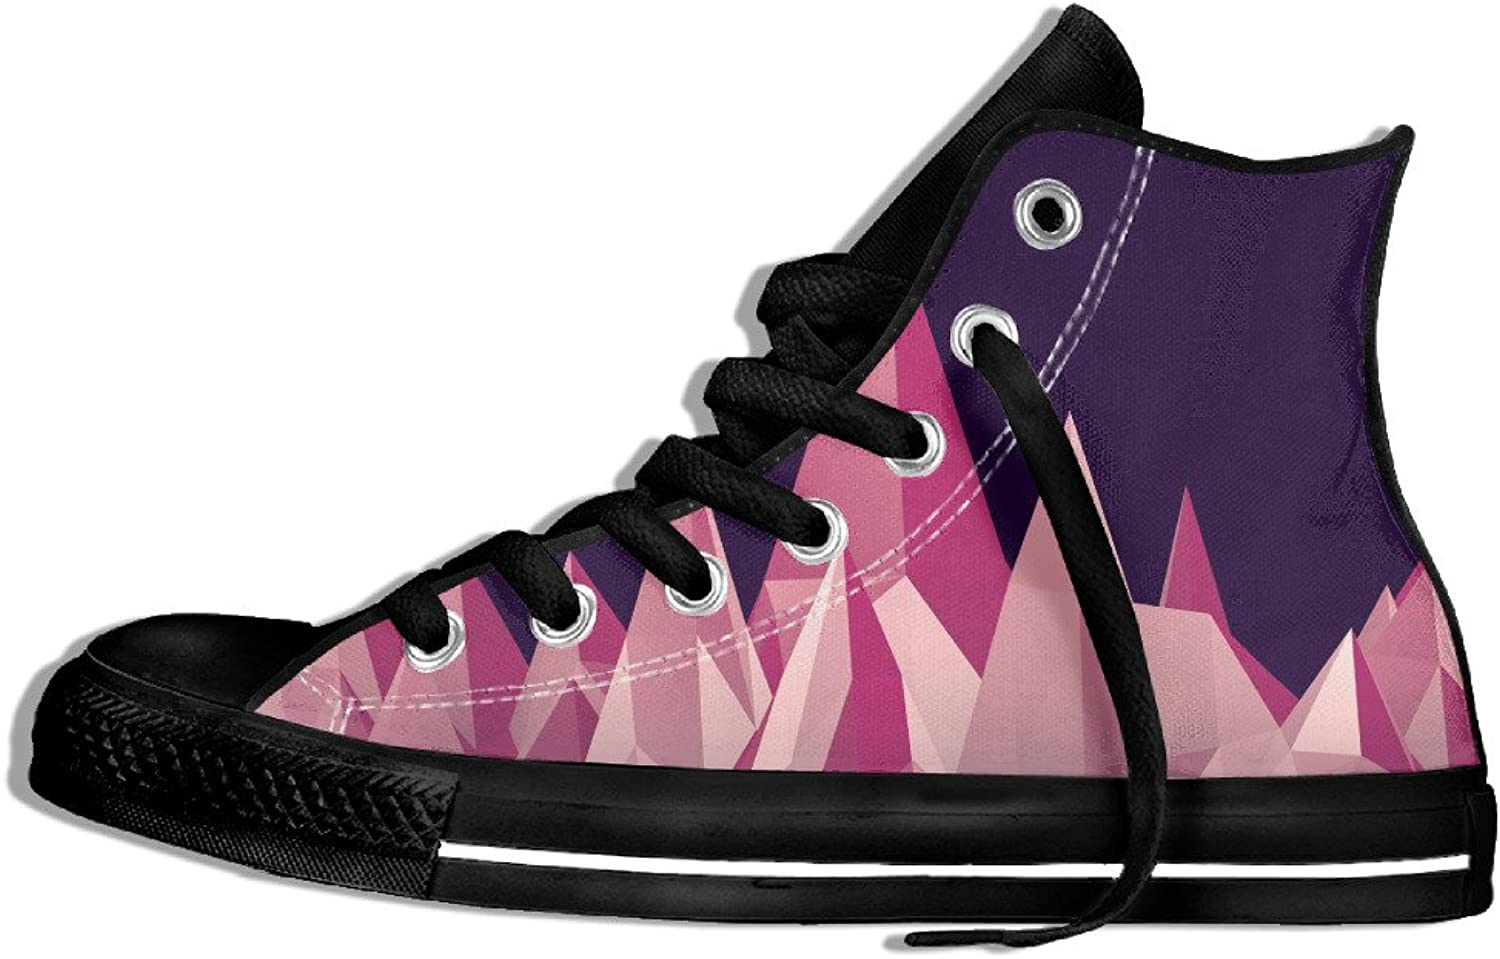 Efbj Art Triangle Unisex Comfortable High Top Canvas shoes Sneakers for Men and Women